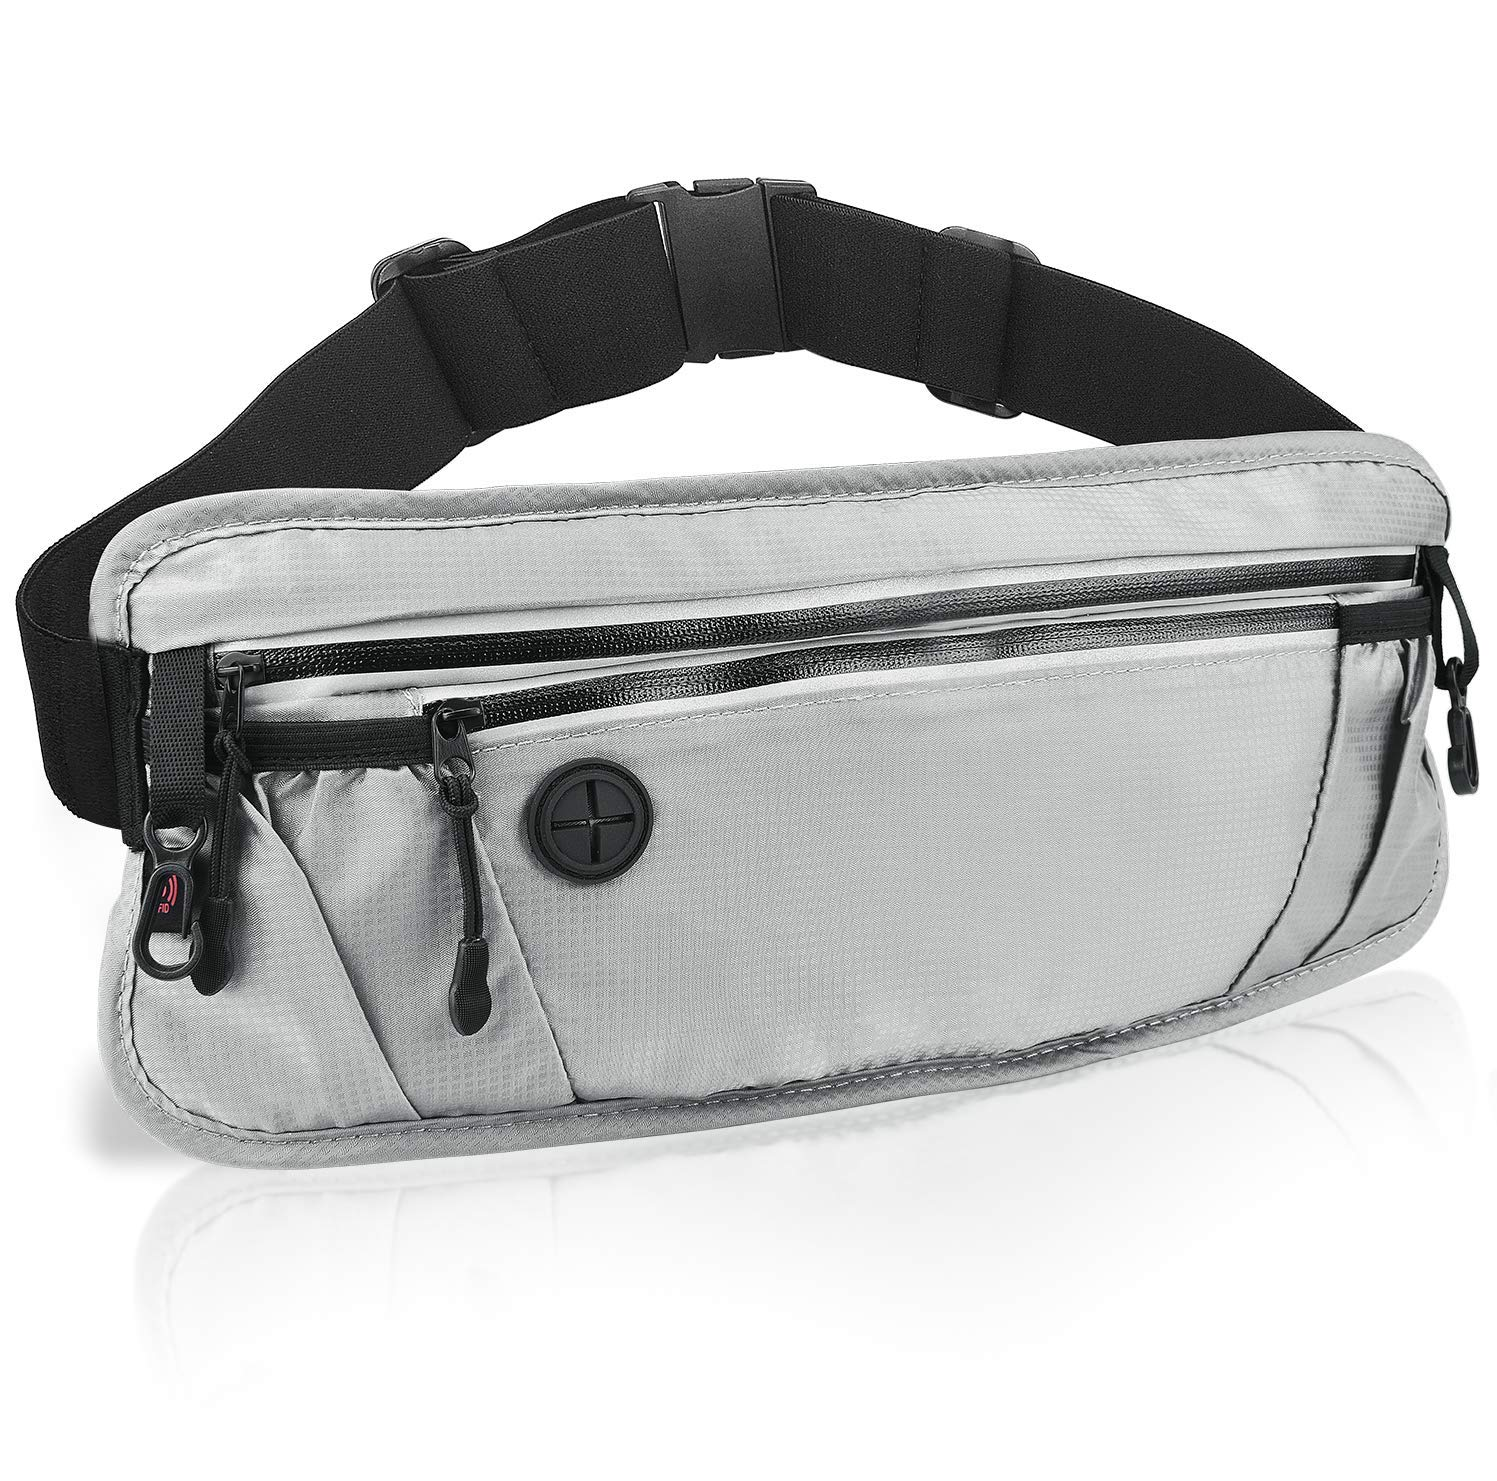 Slim Runing Fanny Pack Waist Pouch Bag for Men Women Water Resistant Hip Bum Bag with RFID Block Reflective Strip Great for Hiking Jogging Sports Runners, Gray